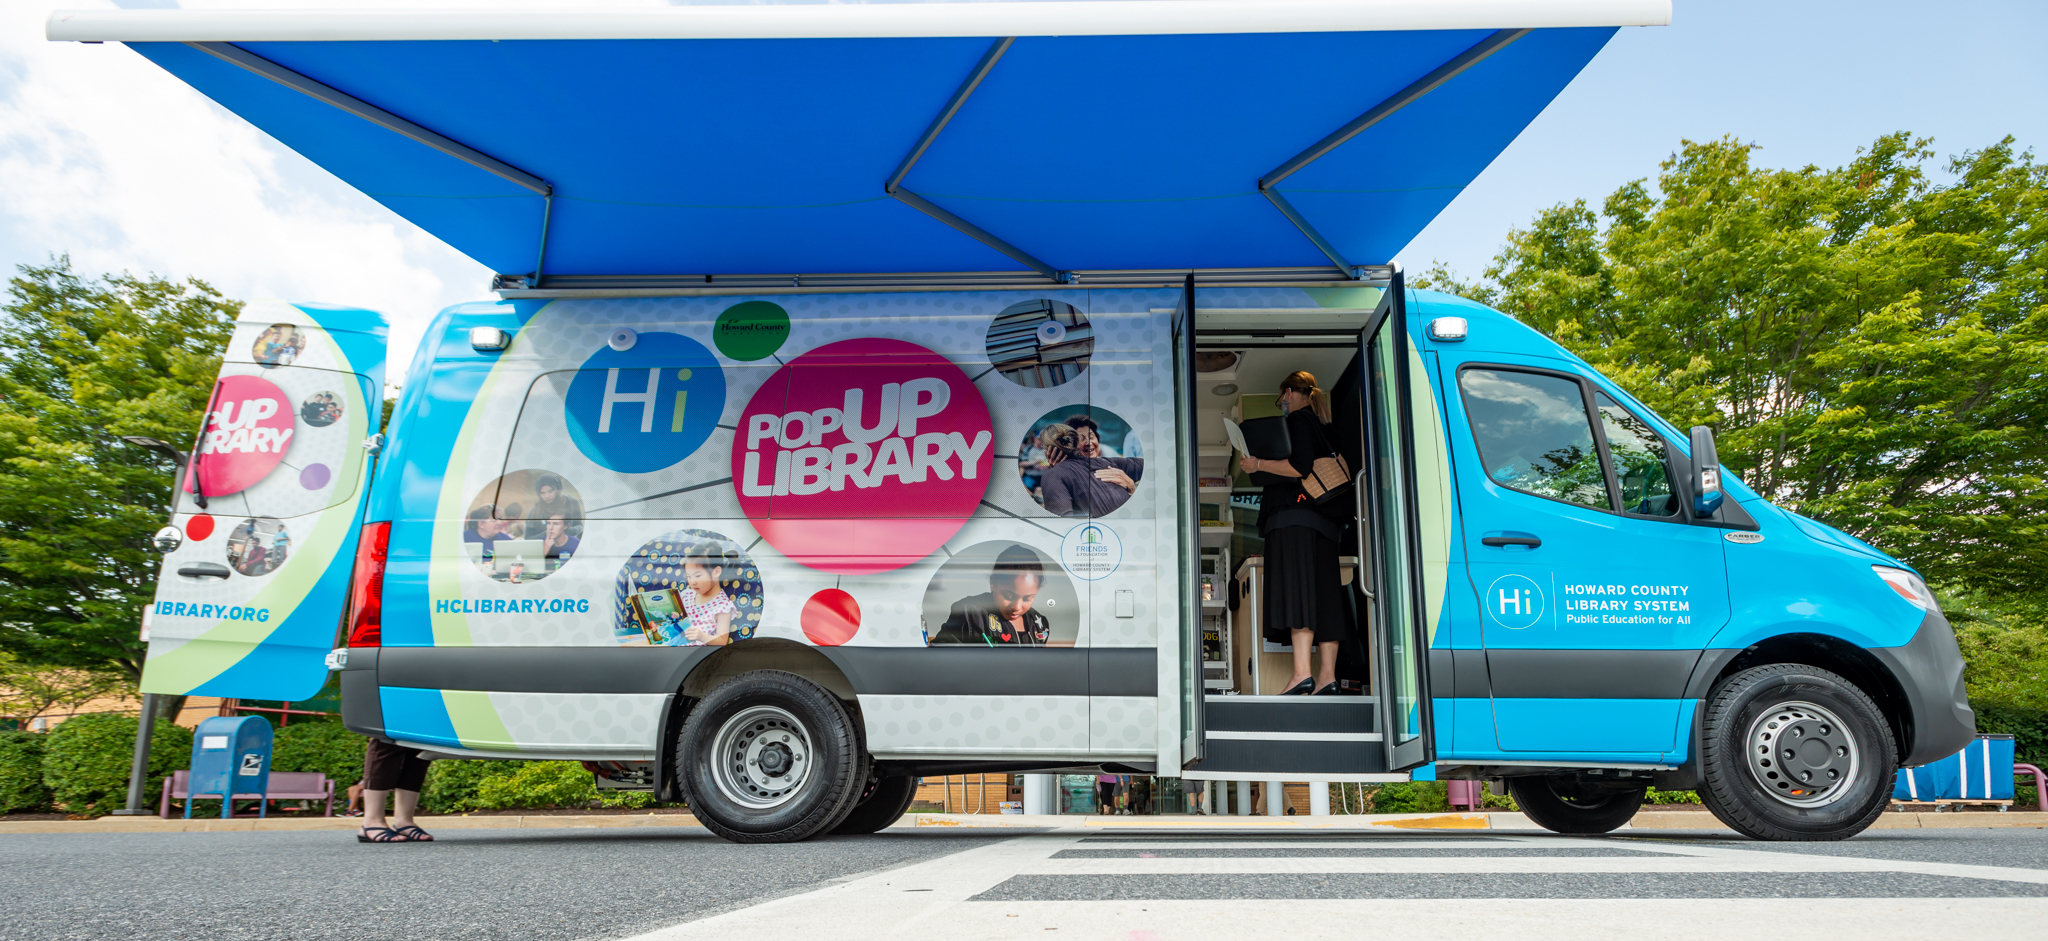 The new van, decorated with colorful circles and photos of Library events, with its awning extended.